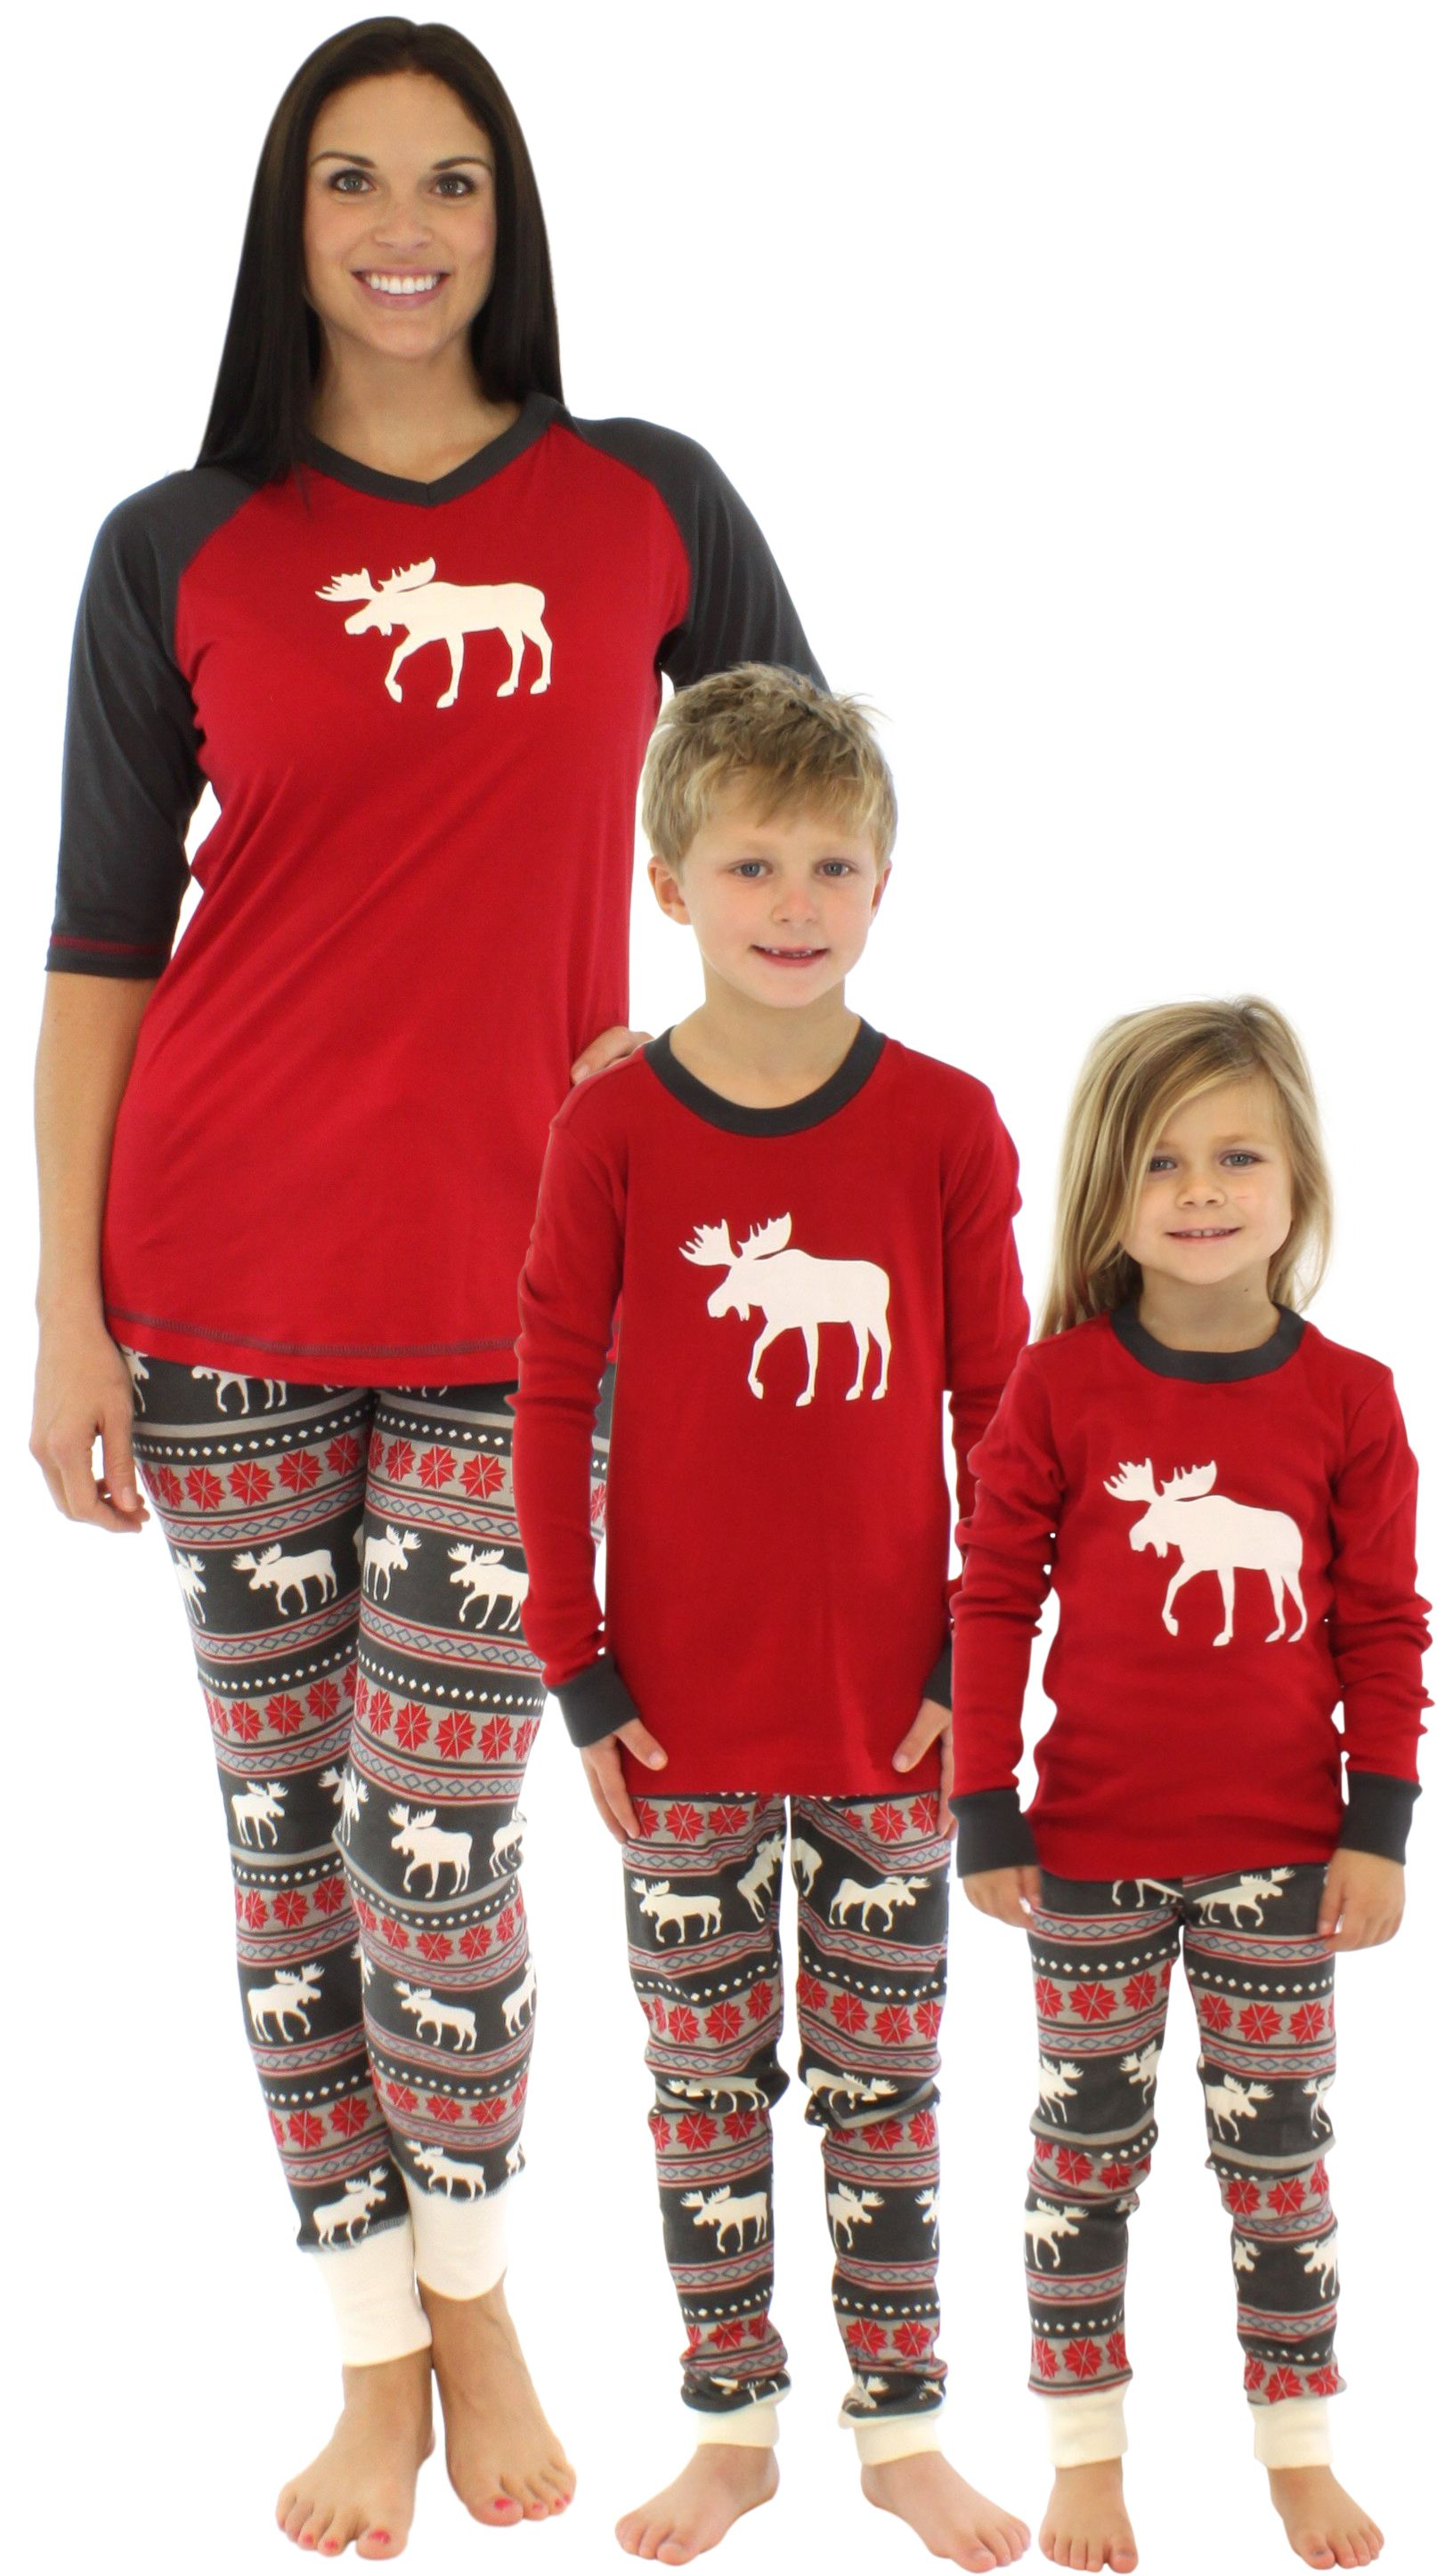 2e72ec5a0d ... Kids Adult Sleepwear Nightwear. Lazy One Family Matching Moose Fair  Isle Pajamas ad